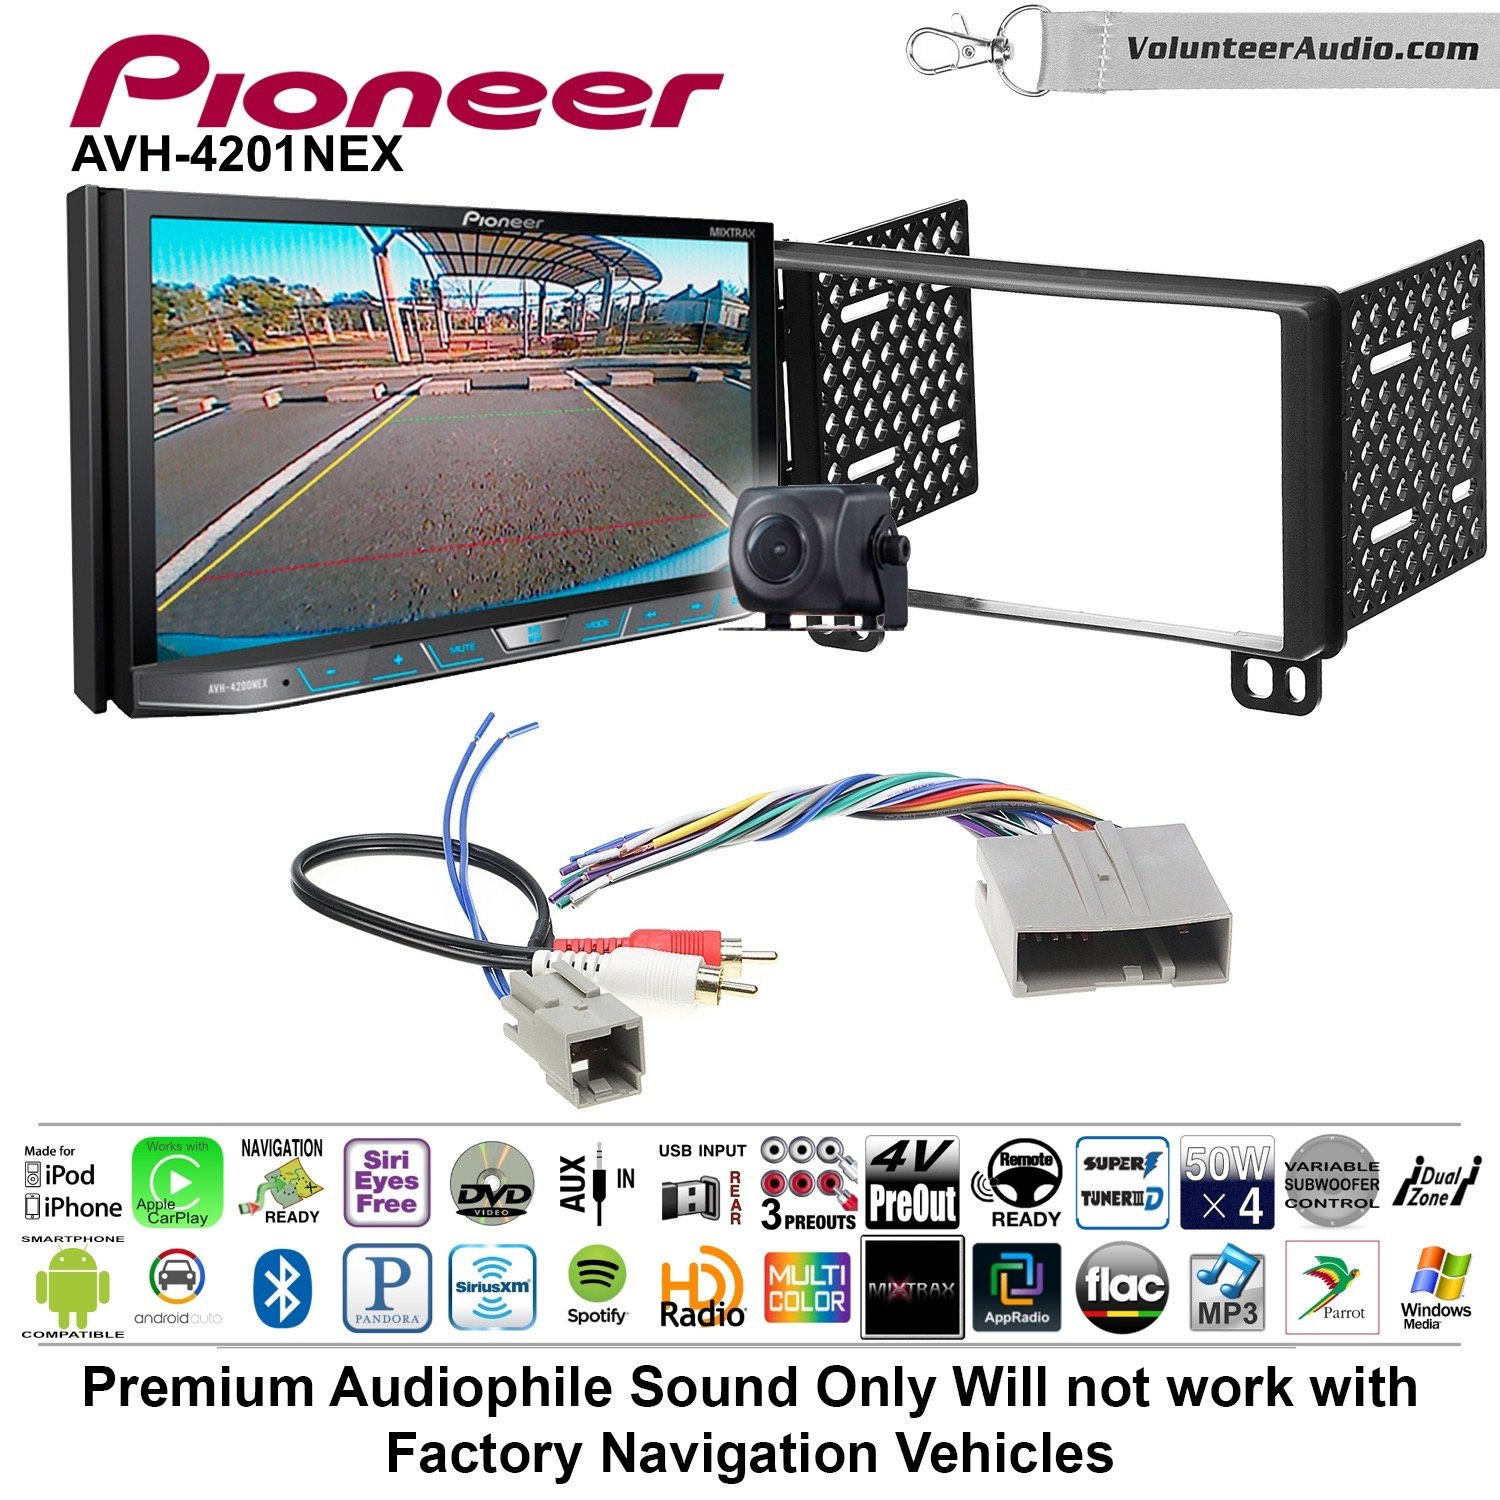 Volunteer Audio Pioneer AVH-4201NEX Double Din Radio Install Kit with Apple Carplay Android Auto Bluetooth Fits 2003-2006 Expedition, 2004-2006 Navigator